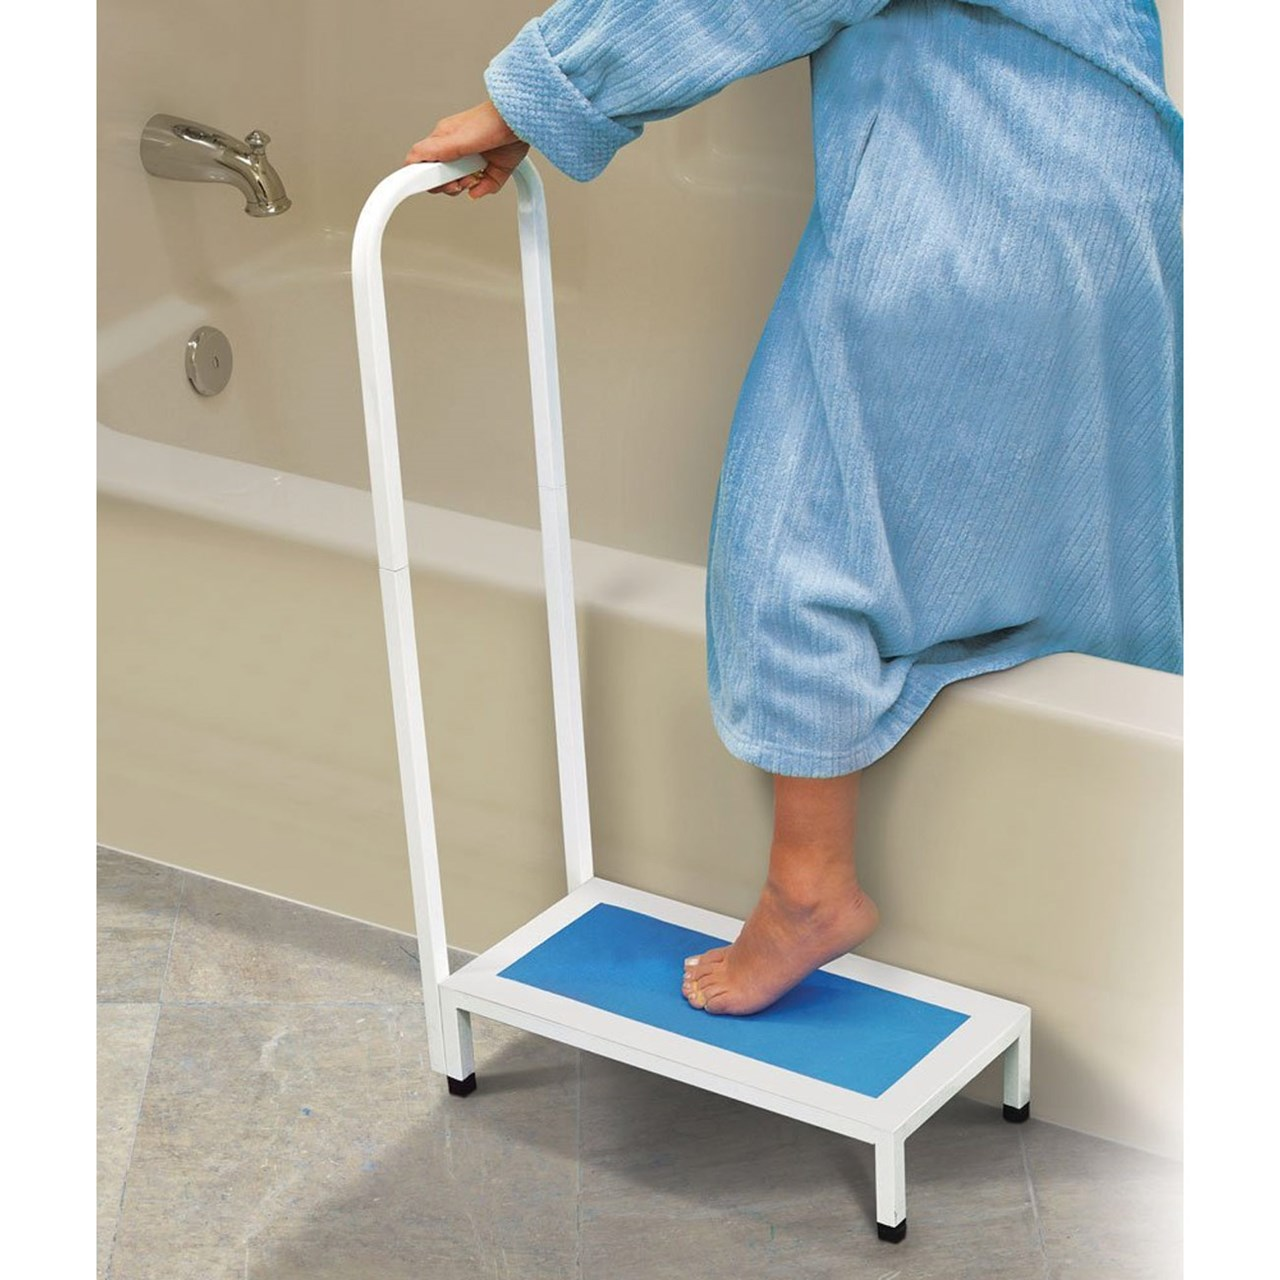 Maxiaids Non Slip Bath Step With Handle